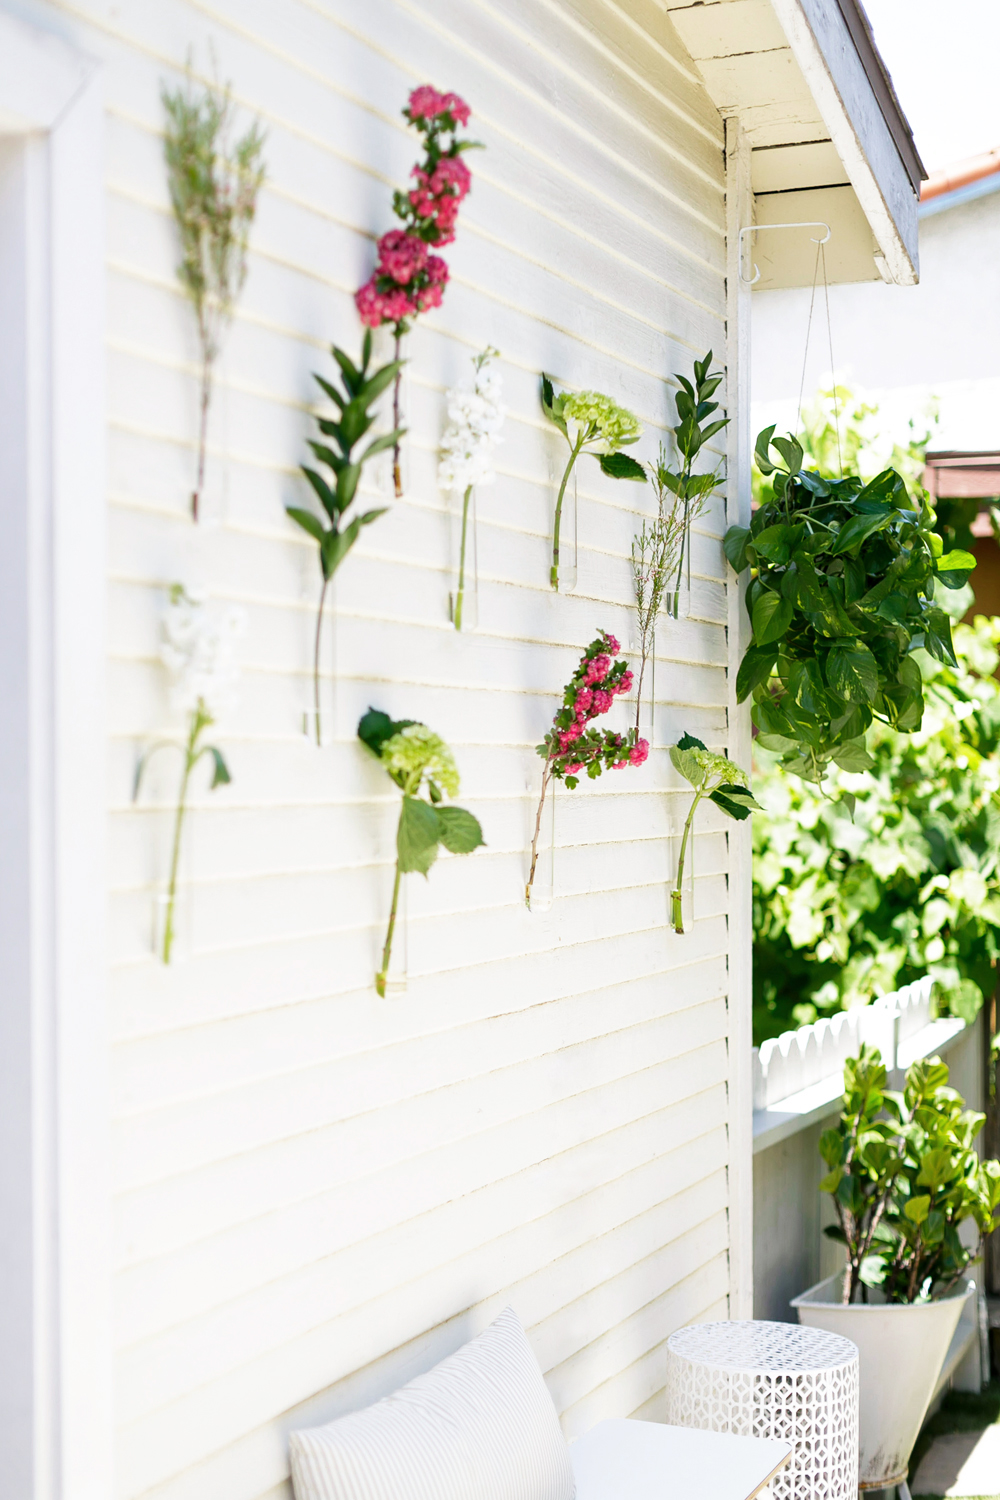 We used beaker vases from cb2 (paired with farmers market clippings) to liven up the blank exterior walls at a minimal cost.